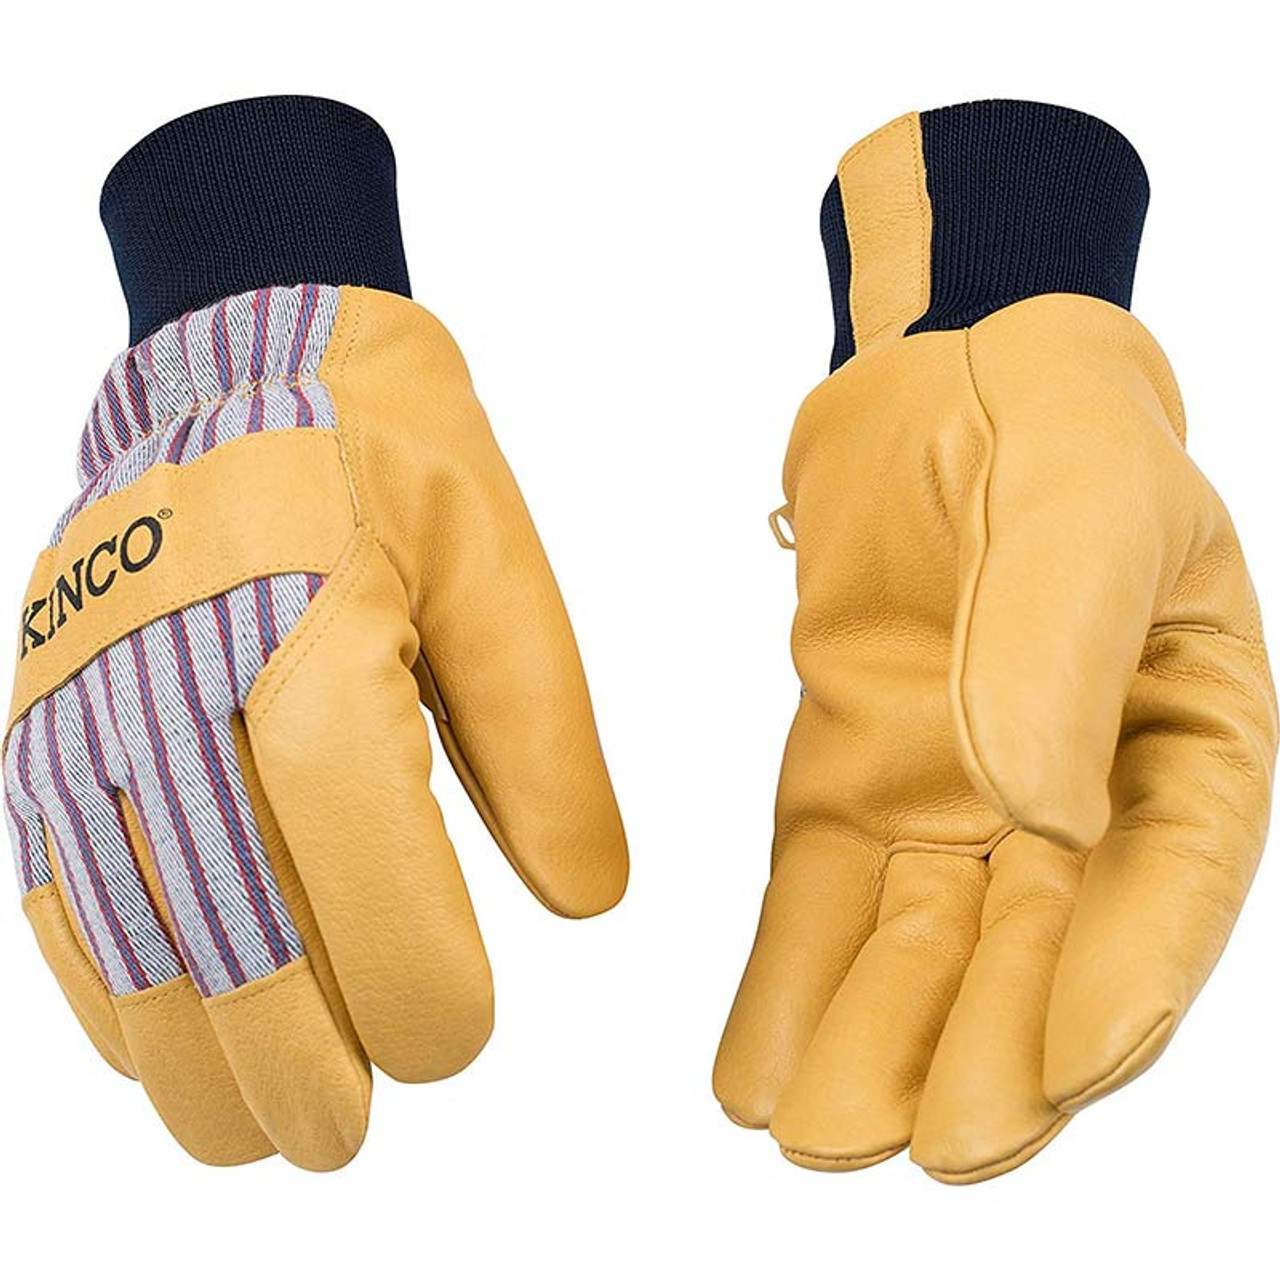 Kinco 90HK Mens LINED DEERSKIN Leather Driver Work Gloves Cold Winter